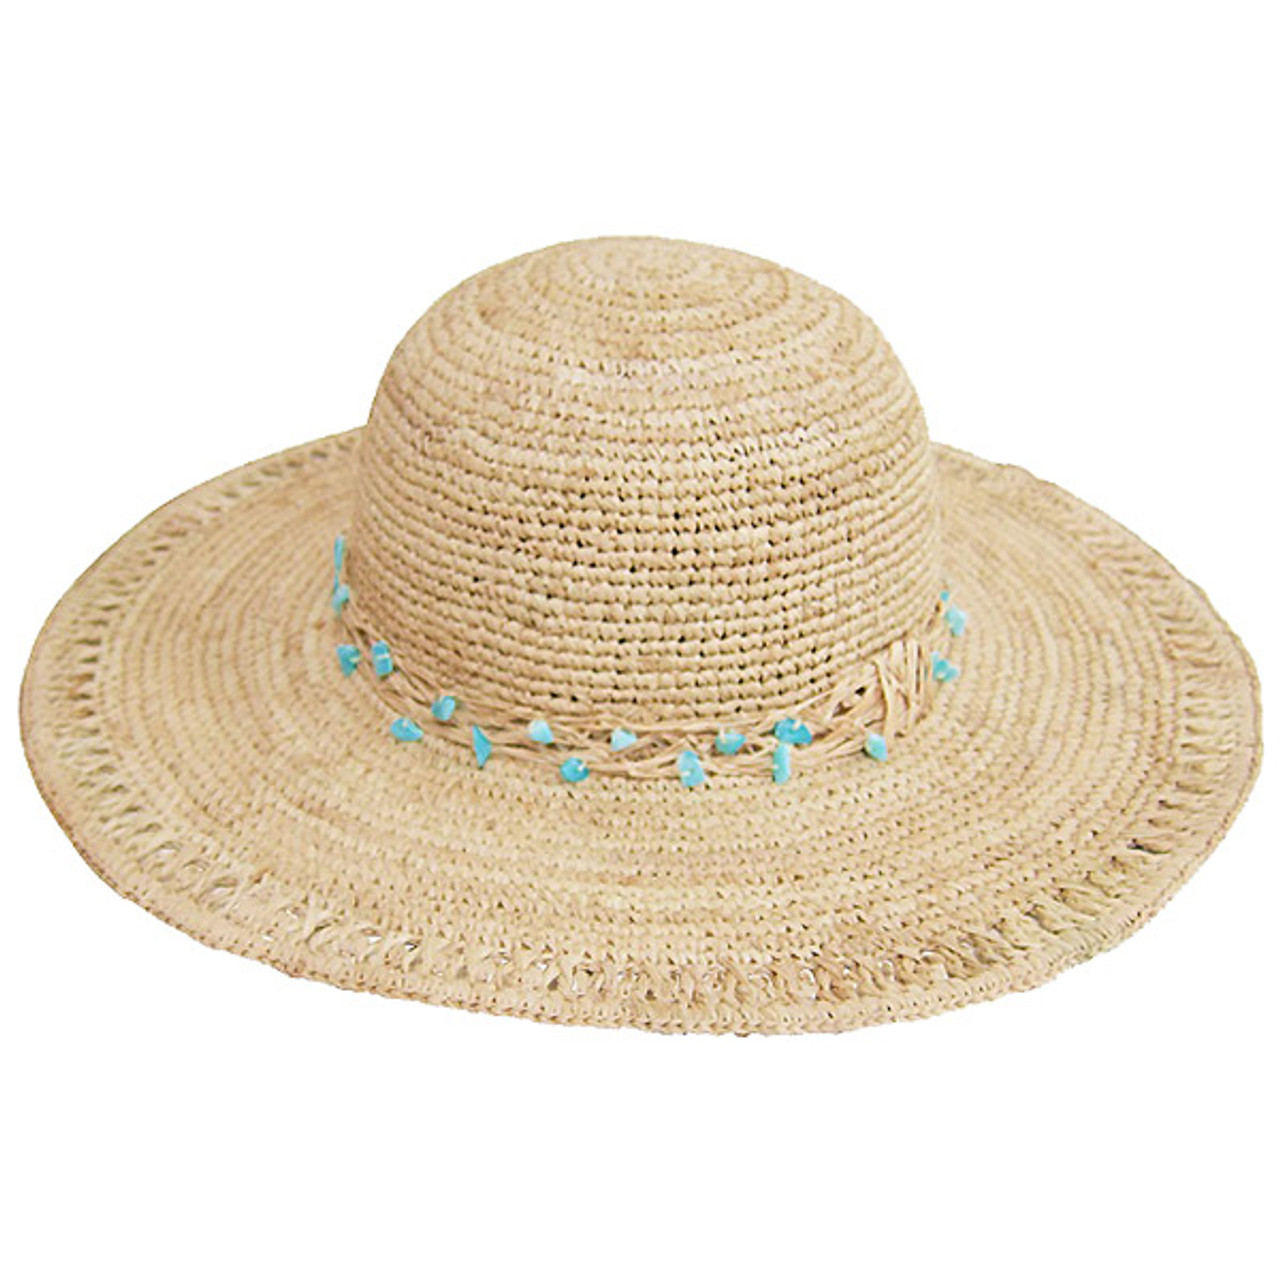 fae4813b5 Boardwalk Style - Raffia Sun Hat with Turquoise Beads